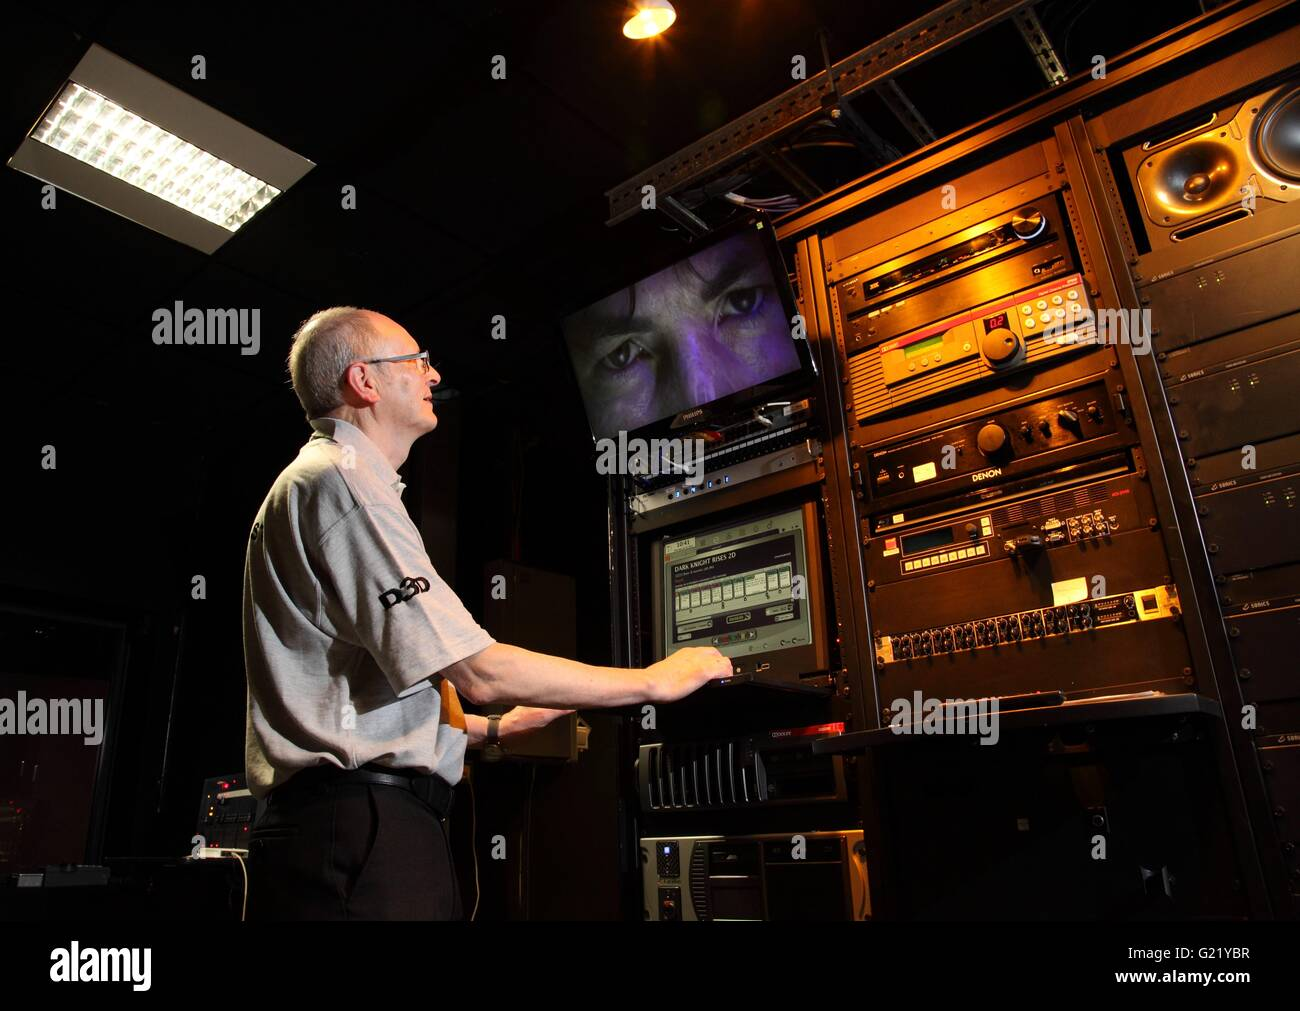 a-man-at-the-controls-of-a-giant-screen-